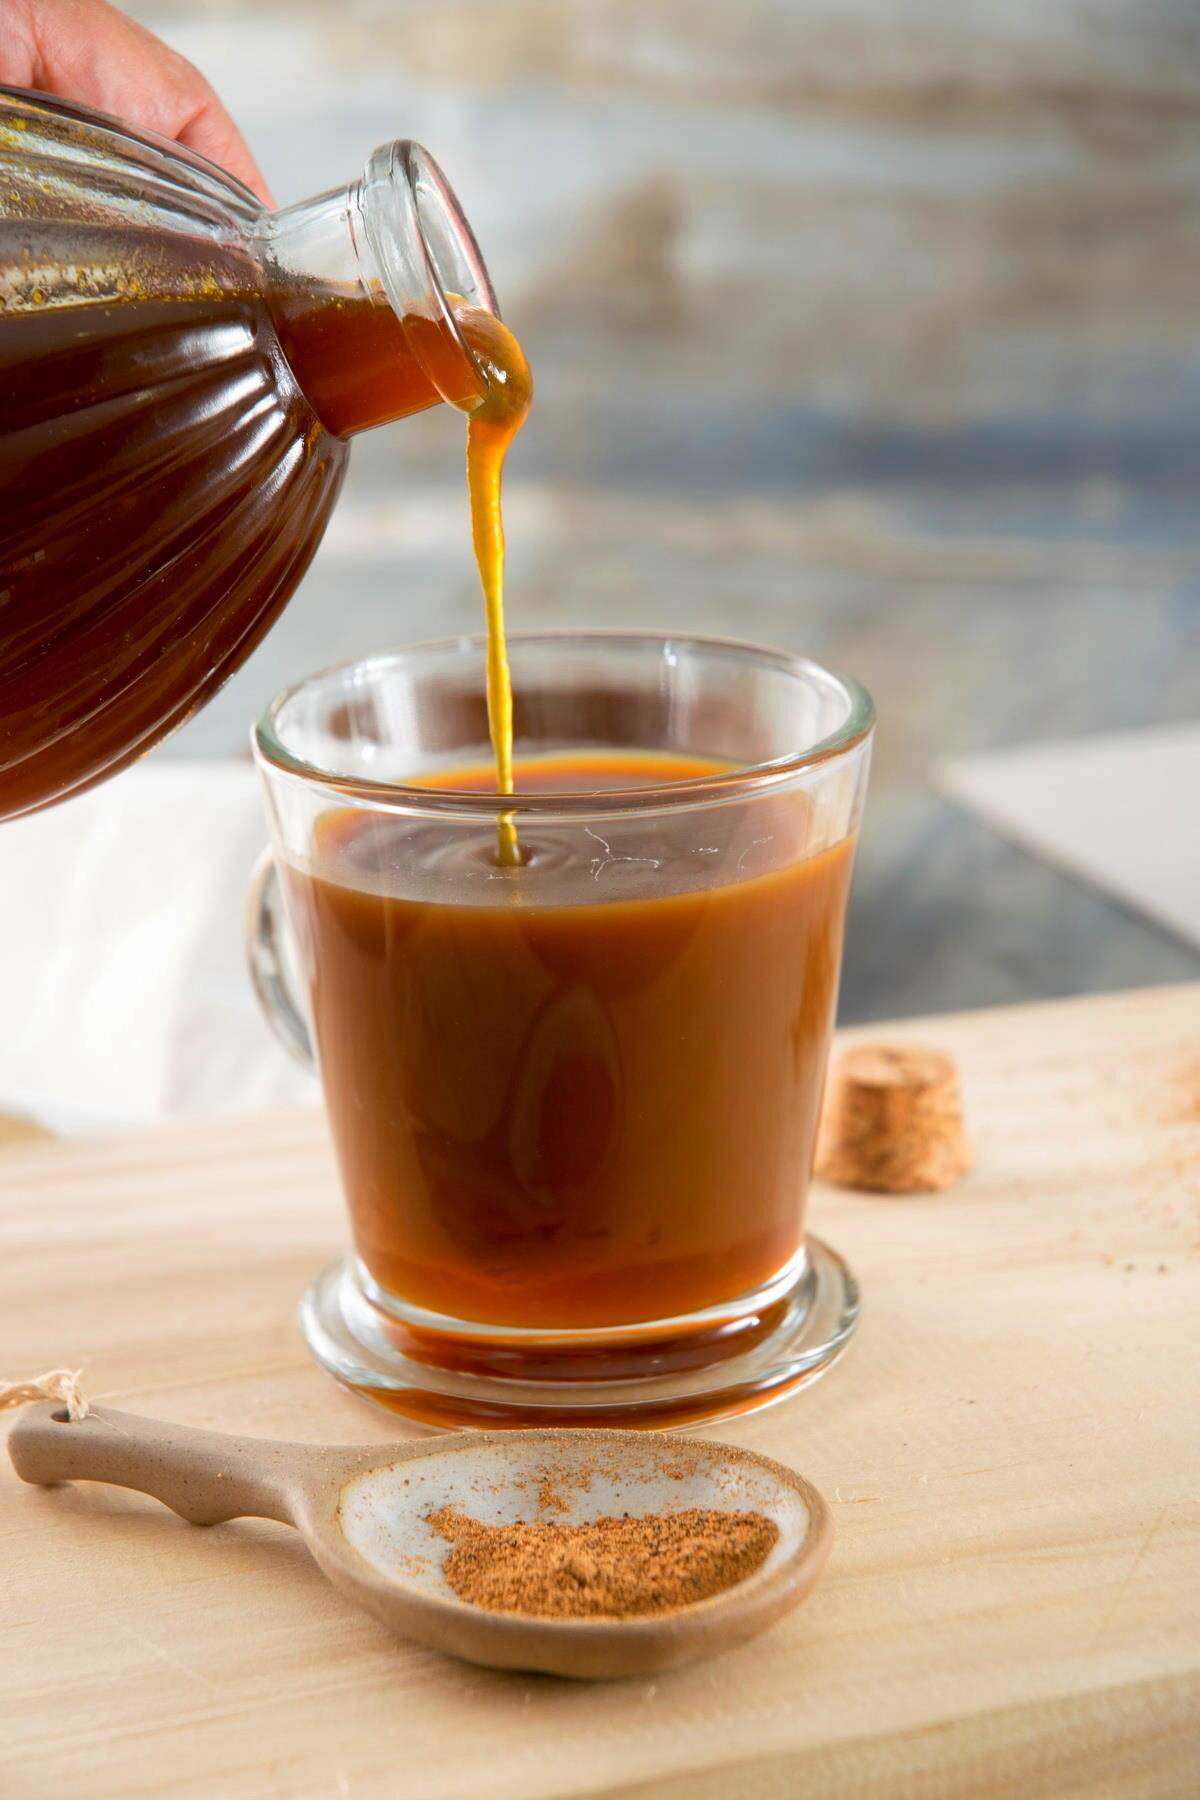 Pumpkin spice syrup pouring into a clear, glass mug of coffee.